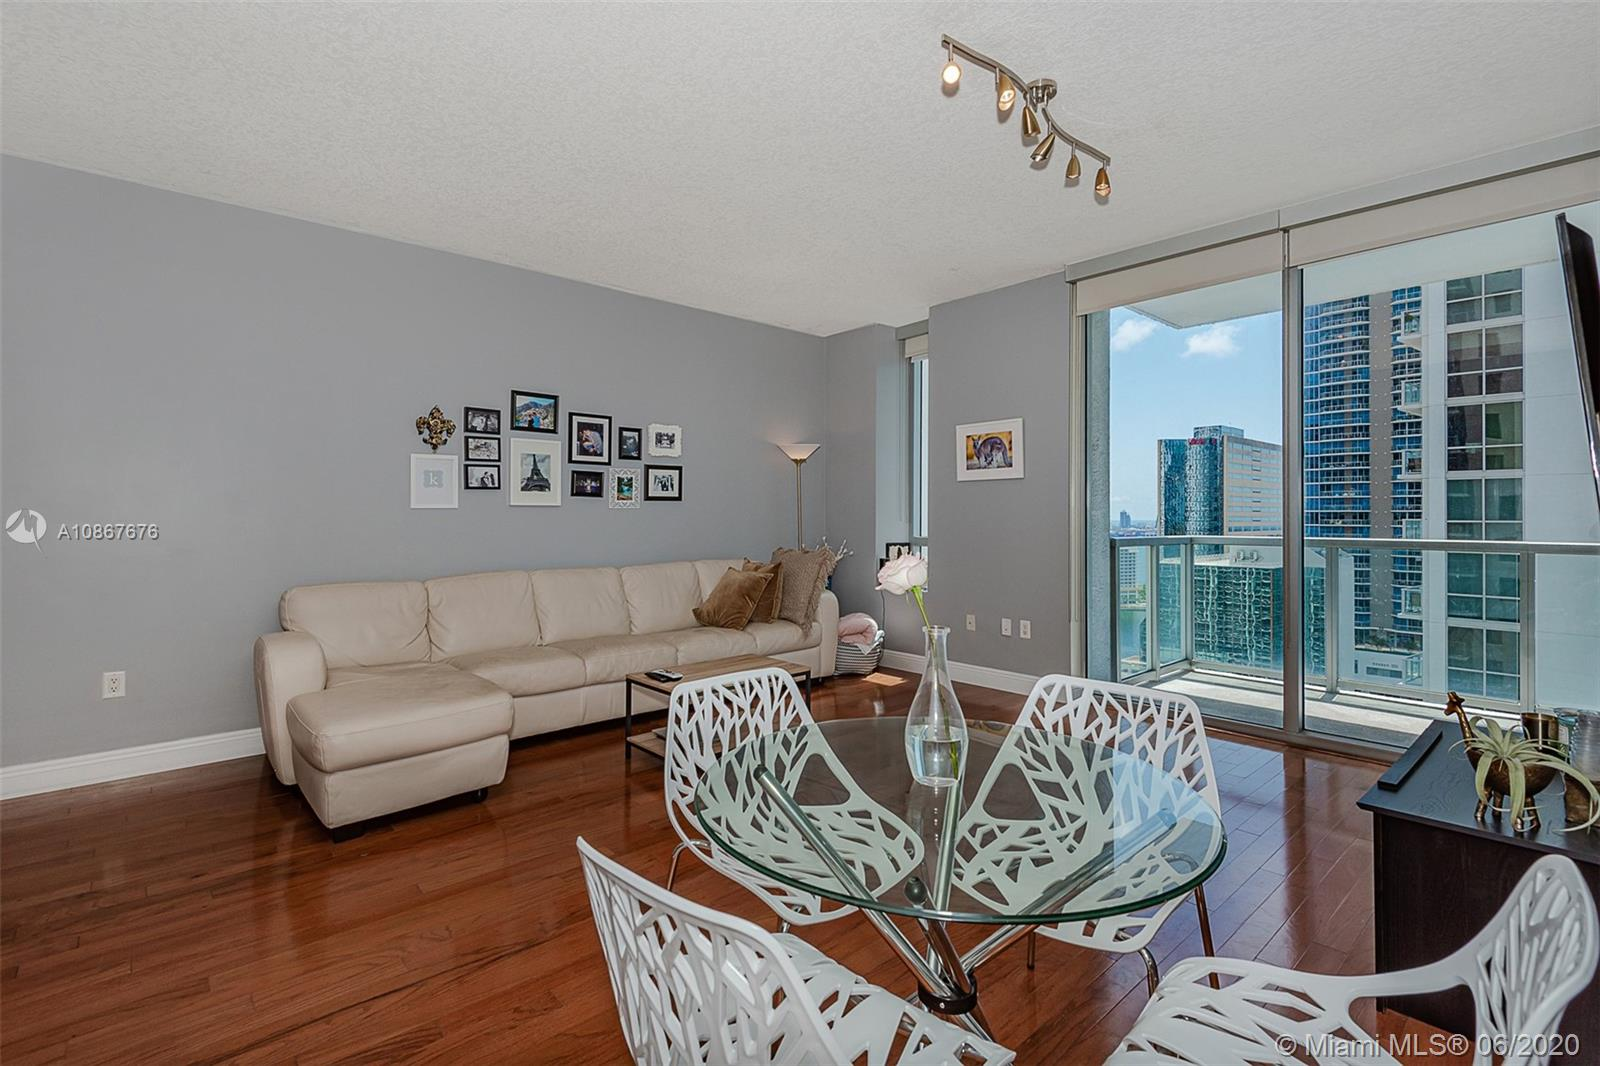 Welcome to the best value for a large 1 bed corner unit with large wrap around terrace with partial bay and fantastic skyline and sunset views located at 1050 Brickell. Features include: Pergo wood flooring throughout, Bosch & kitchen aid stainless steal appliances in your huge chef kitchen with tons of cabinet space, upgraded full washer/dryer, floor to ceiling windows in the living room with fantastic skyline views. The master suite is generously distributed with natural light as well as upgraded blackout blinds. Have access to your huge walk in closet for tons of storage. Your master bath retreat includes a tub/shower as well as marble flooring throughout the bathroom.  Walk directly out of 1050 Brickell into Mary Brickell Village to shops & restaurants. Steps from Brickell City Centre.